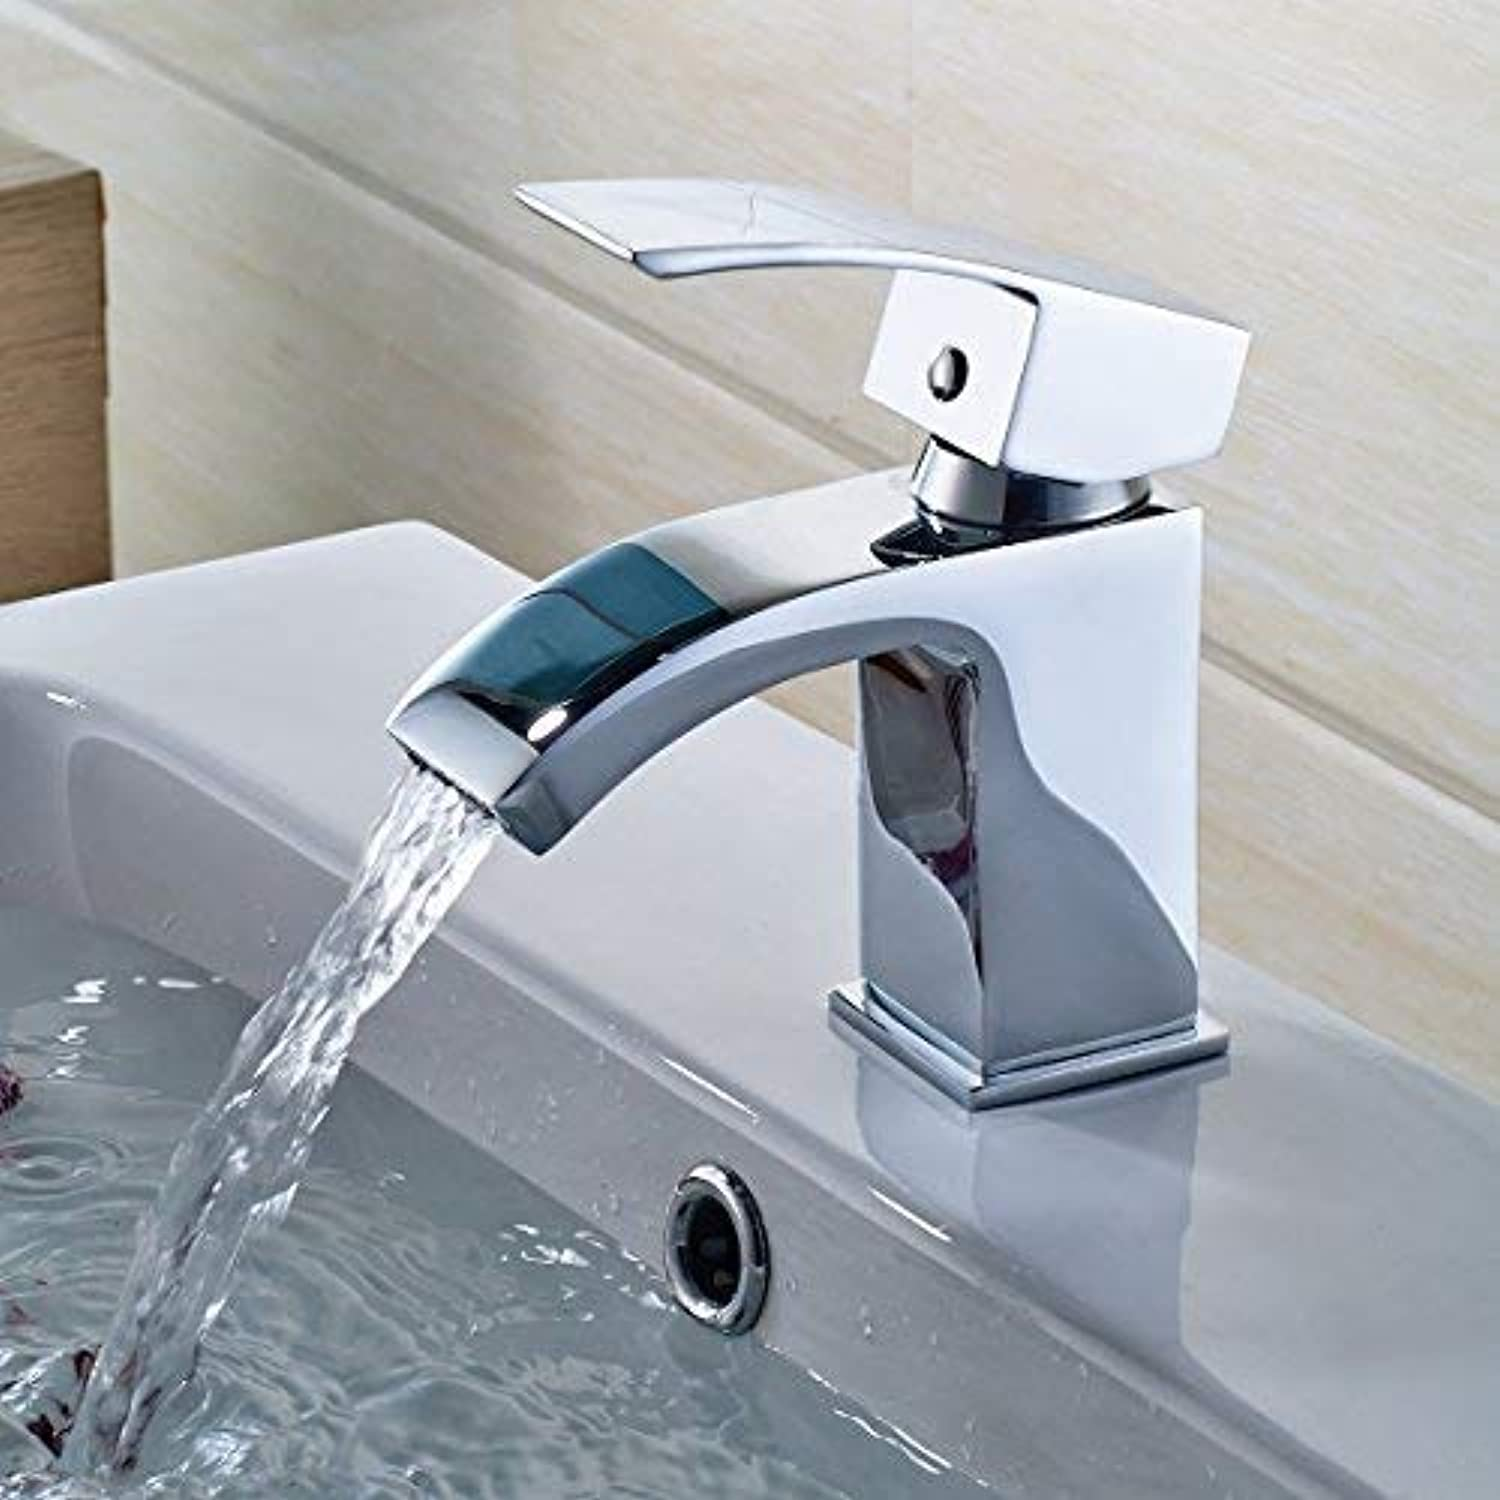 Damoyar Chrome Finish Bathroom Basin Waterfall Mixer Tap Brass Fitting, Hot and Cold Single Handle Monobloc Tap, Monobloc Bathroom Sink Faucet B009